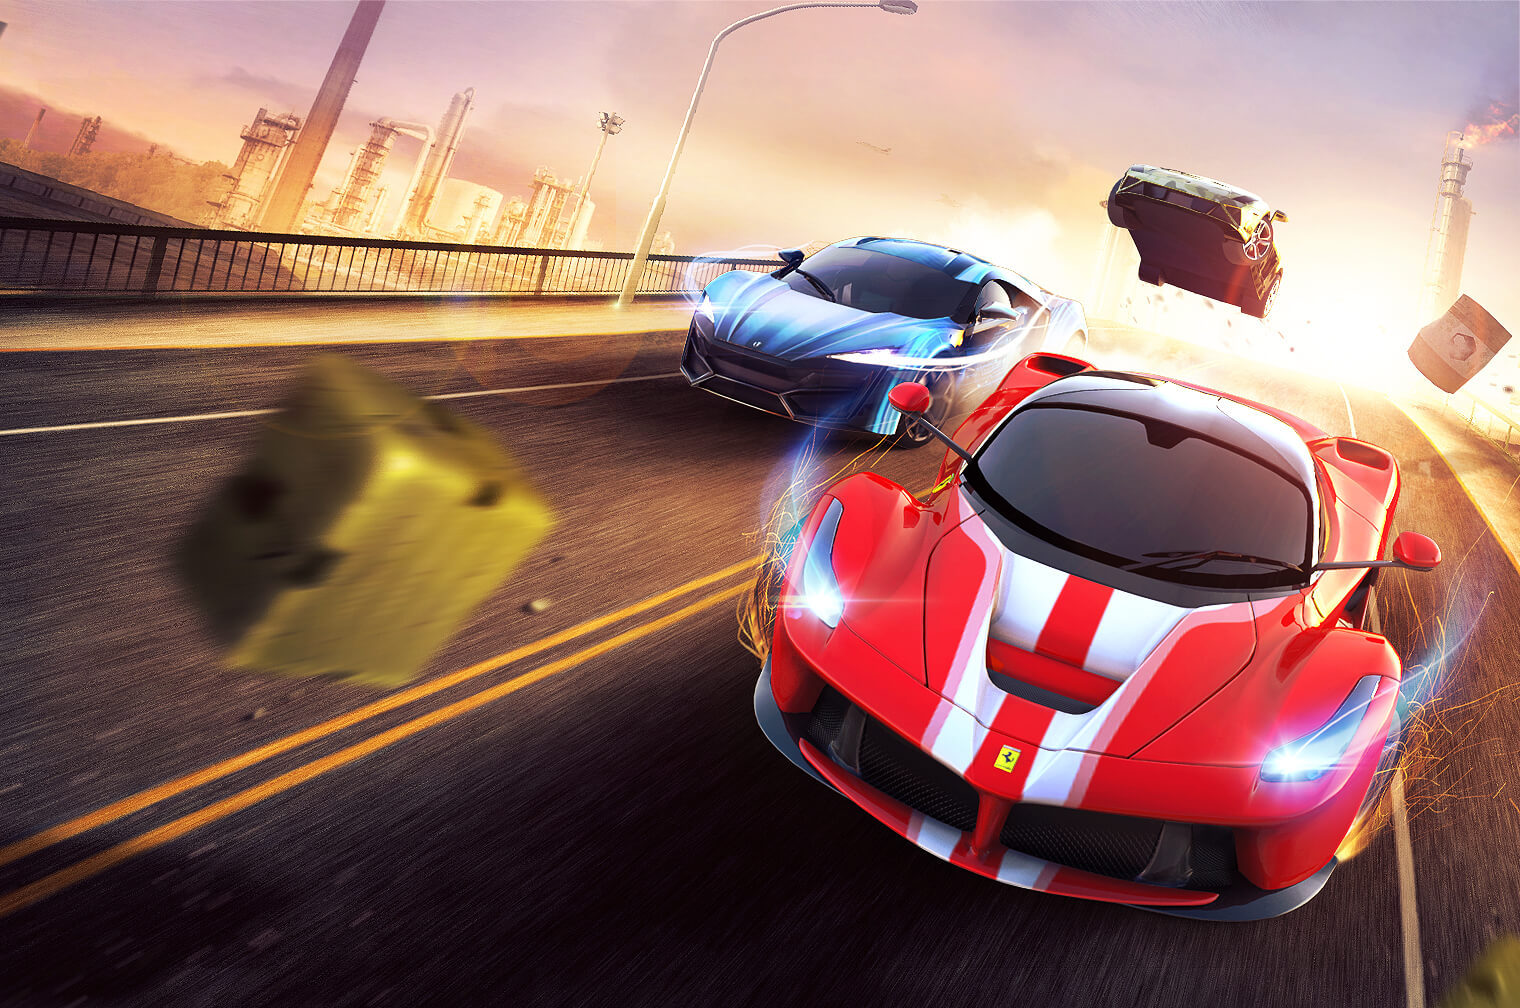 Get ready for a holiday rush in Gameloft's Asphalt 8: Airborne